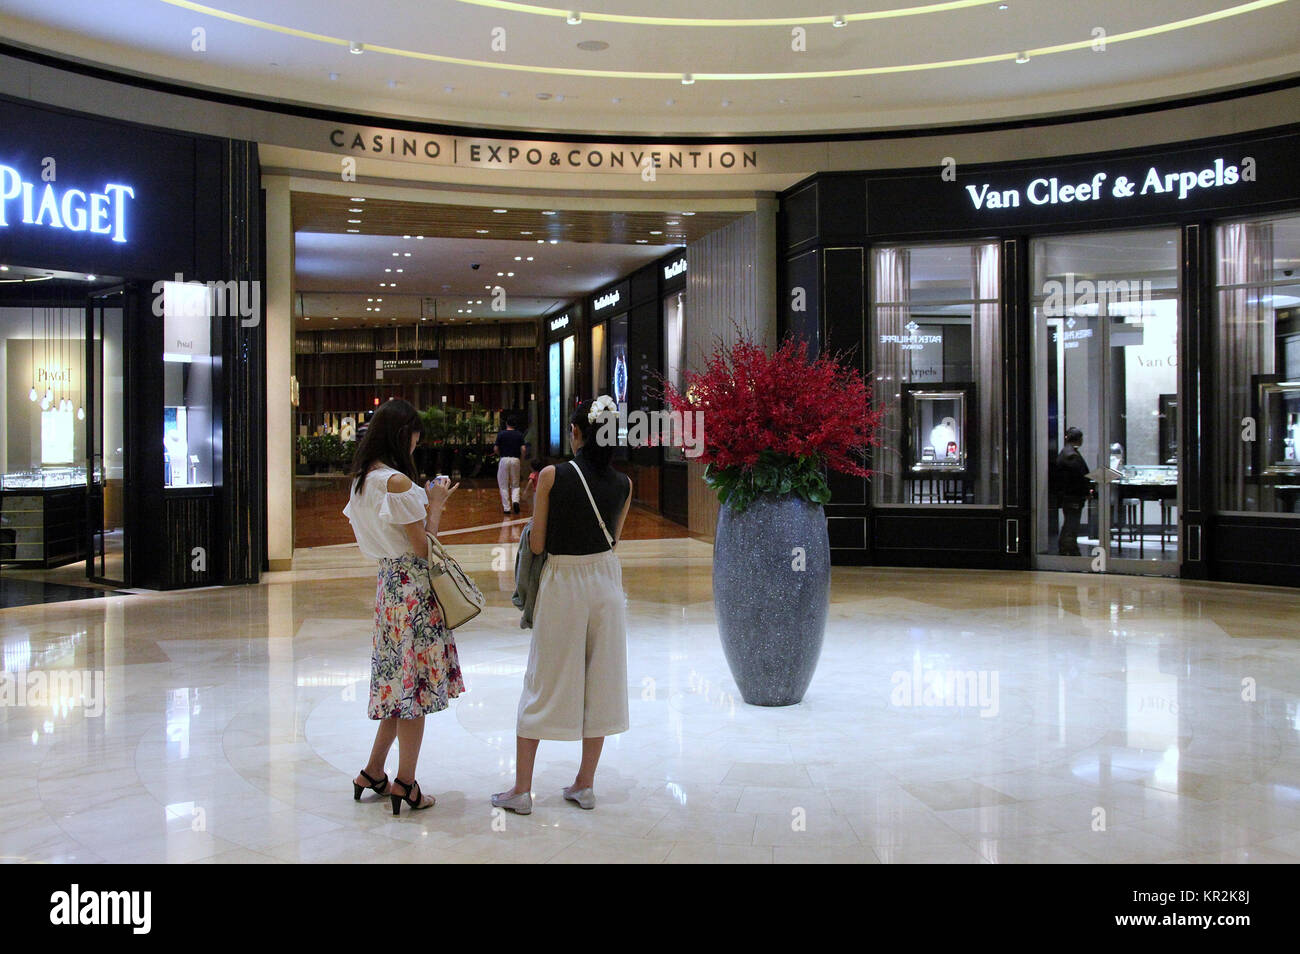 The Shoppes at Marina Bay Sands Hotel in Singapore - Stock Image